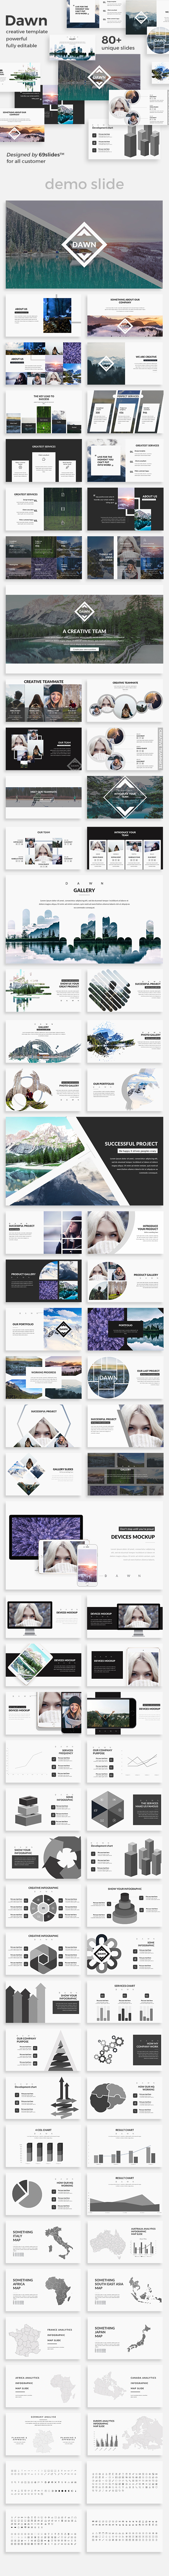 Dawn Creative Powerpoint Template - Creative PowerPoint Templates